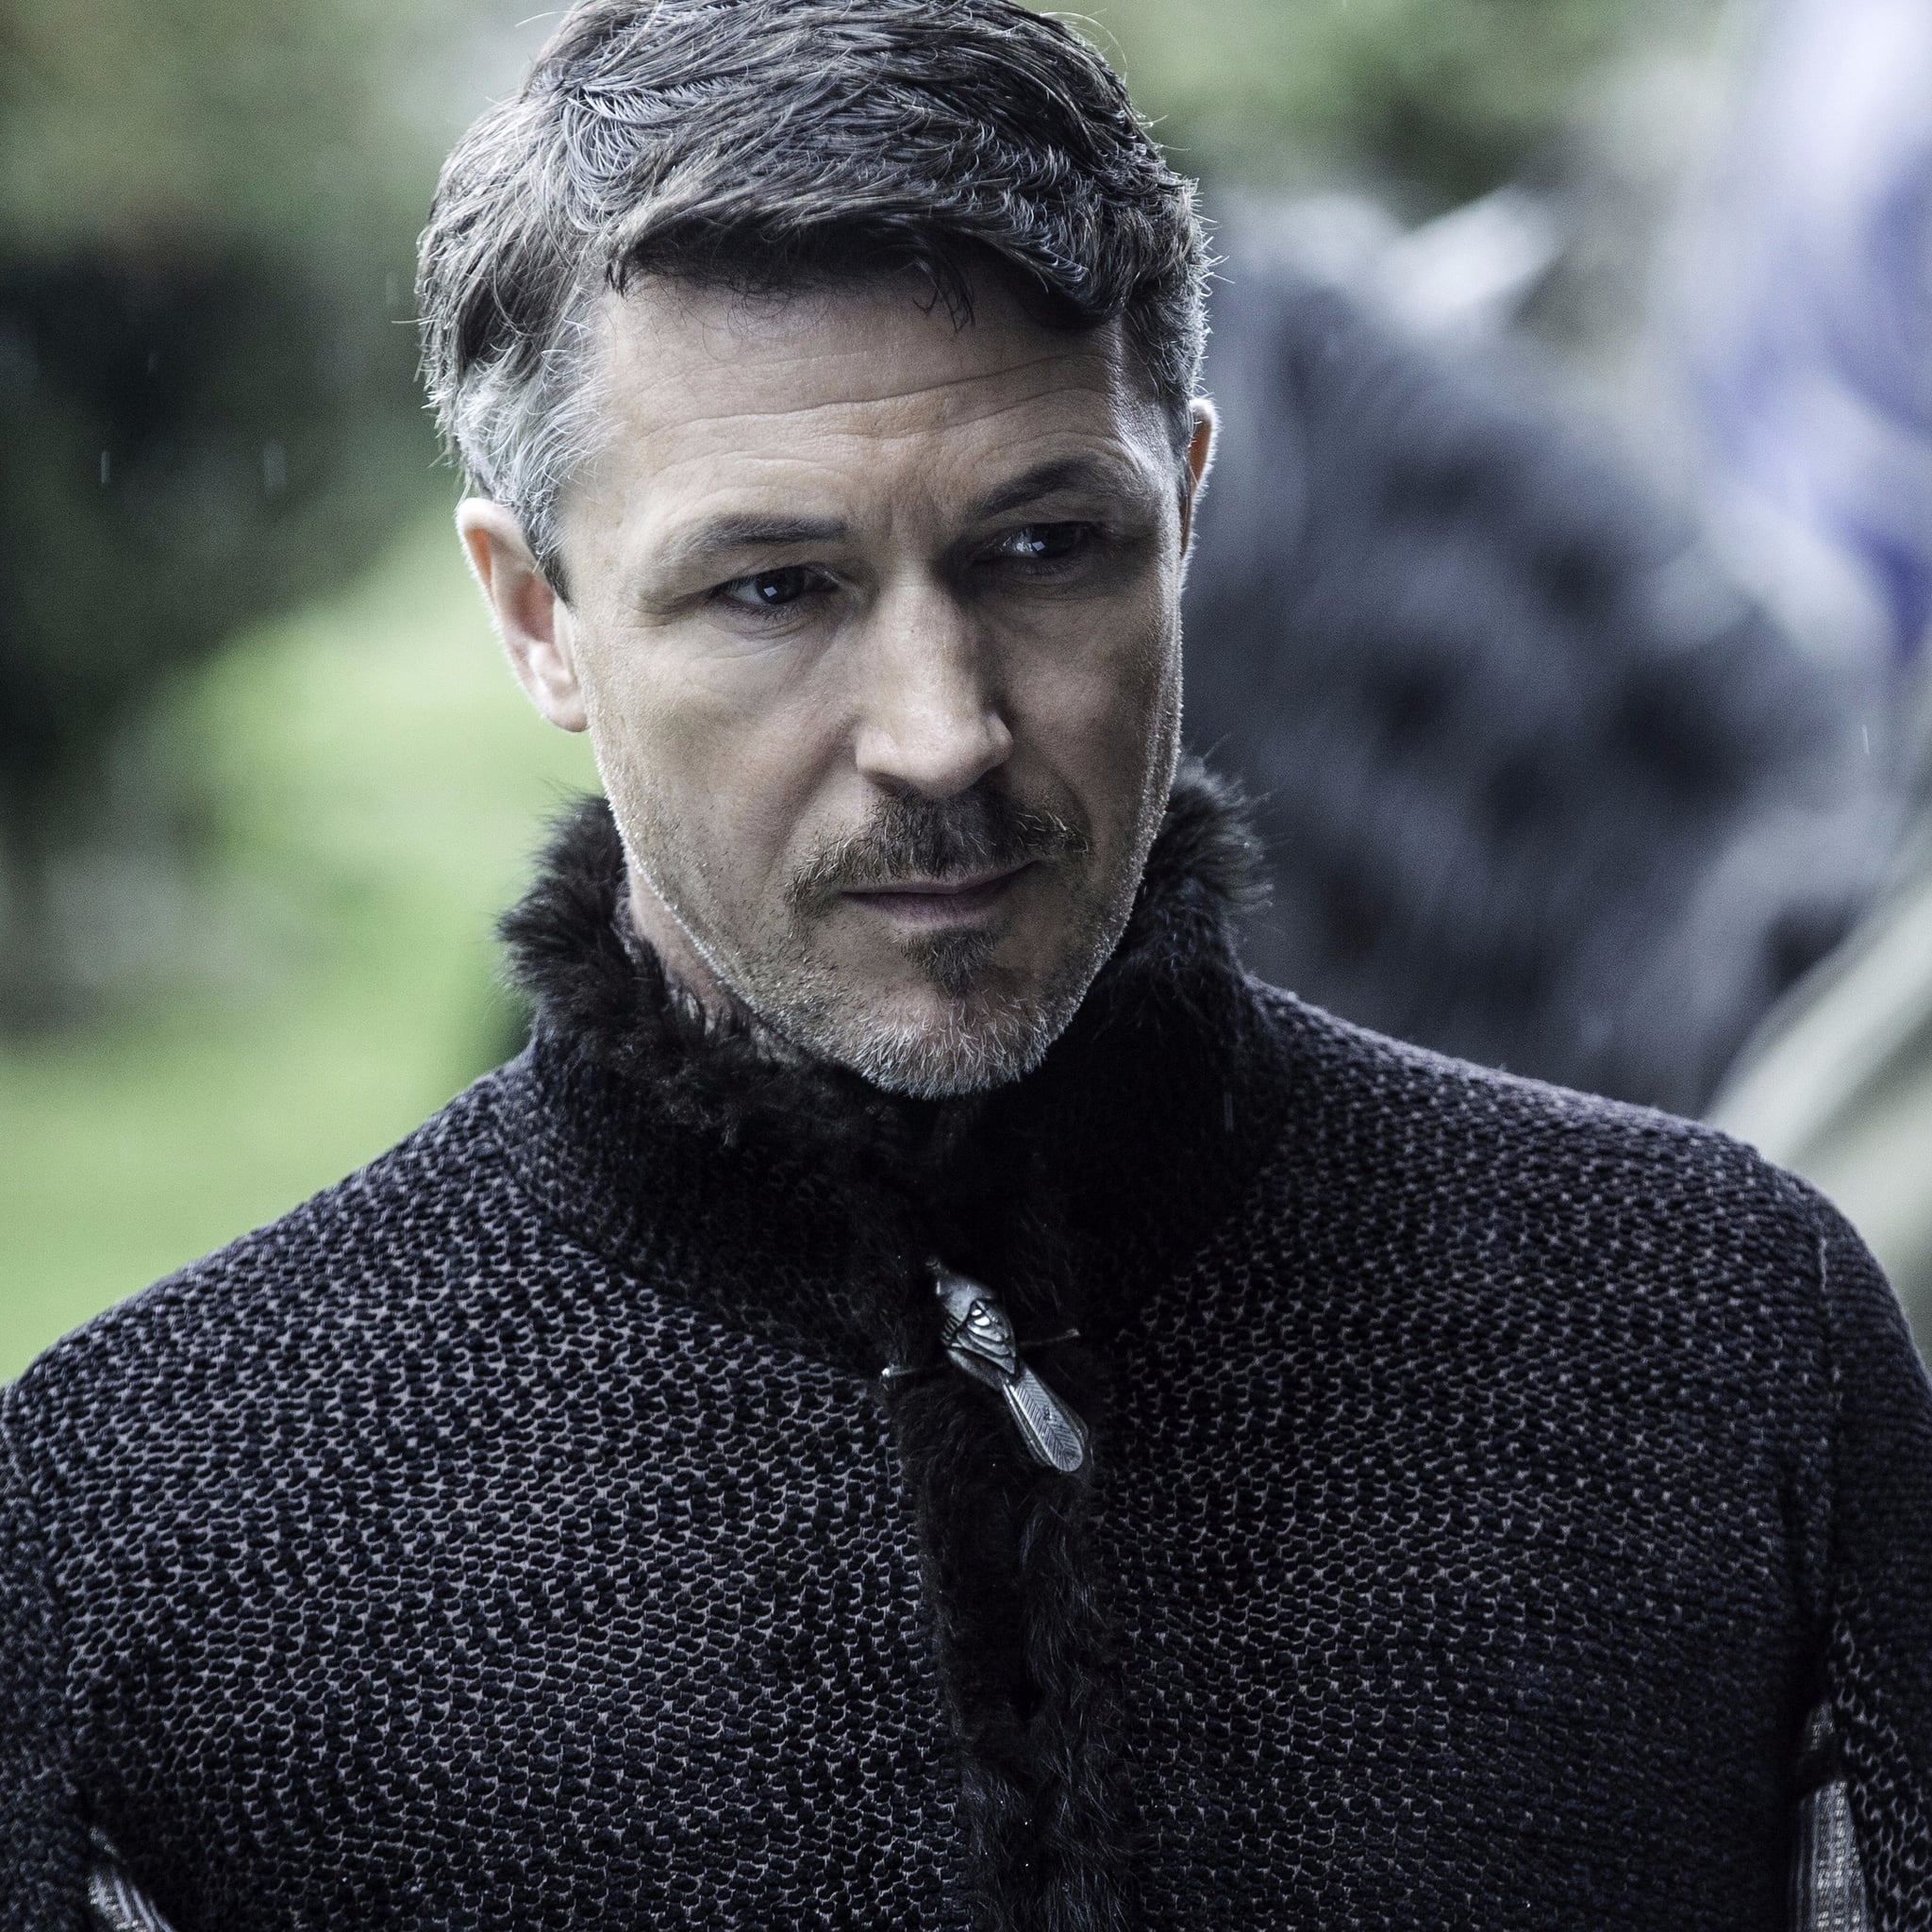 Petyr Baelish sobriquet Littlefinger, a fictional character in the A Song of Ice and Fire series of fantasy novels by George R. R. Martin, and Game of Thrones